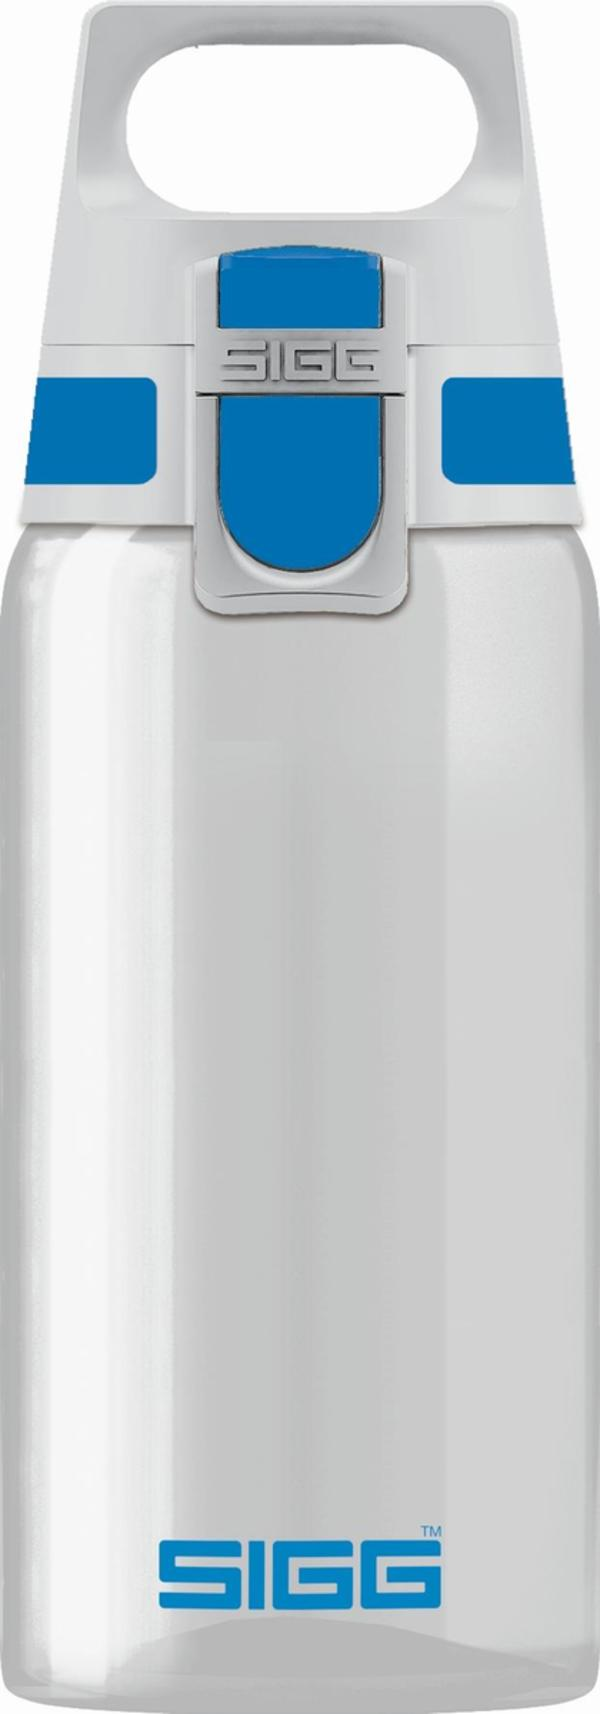 SIGG Trinkflasche Clear One Blue 0.5l